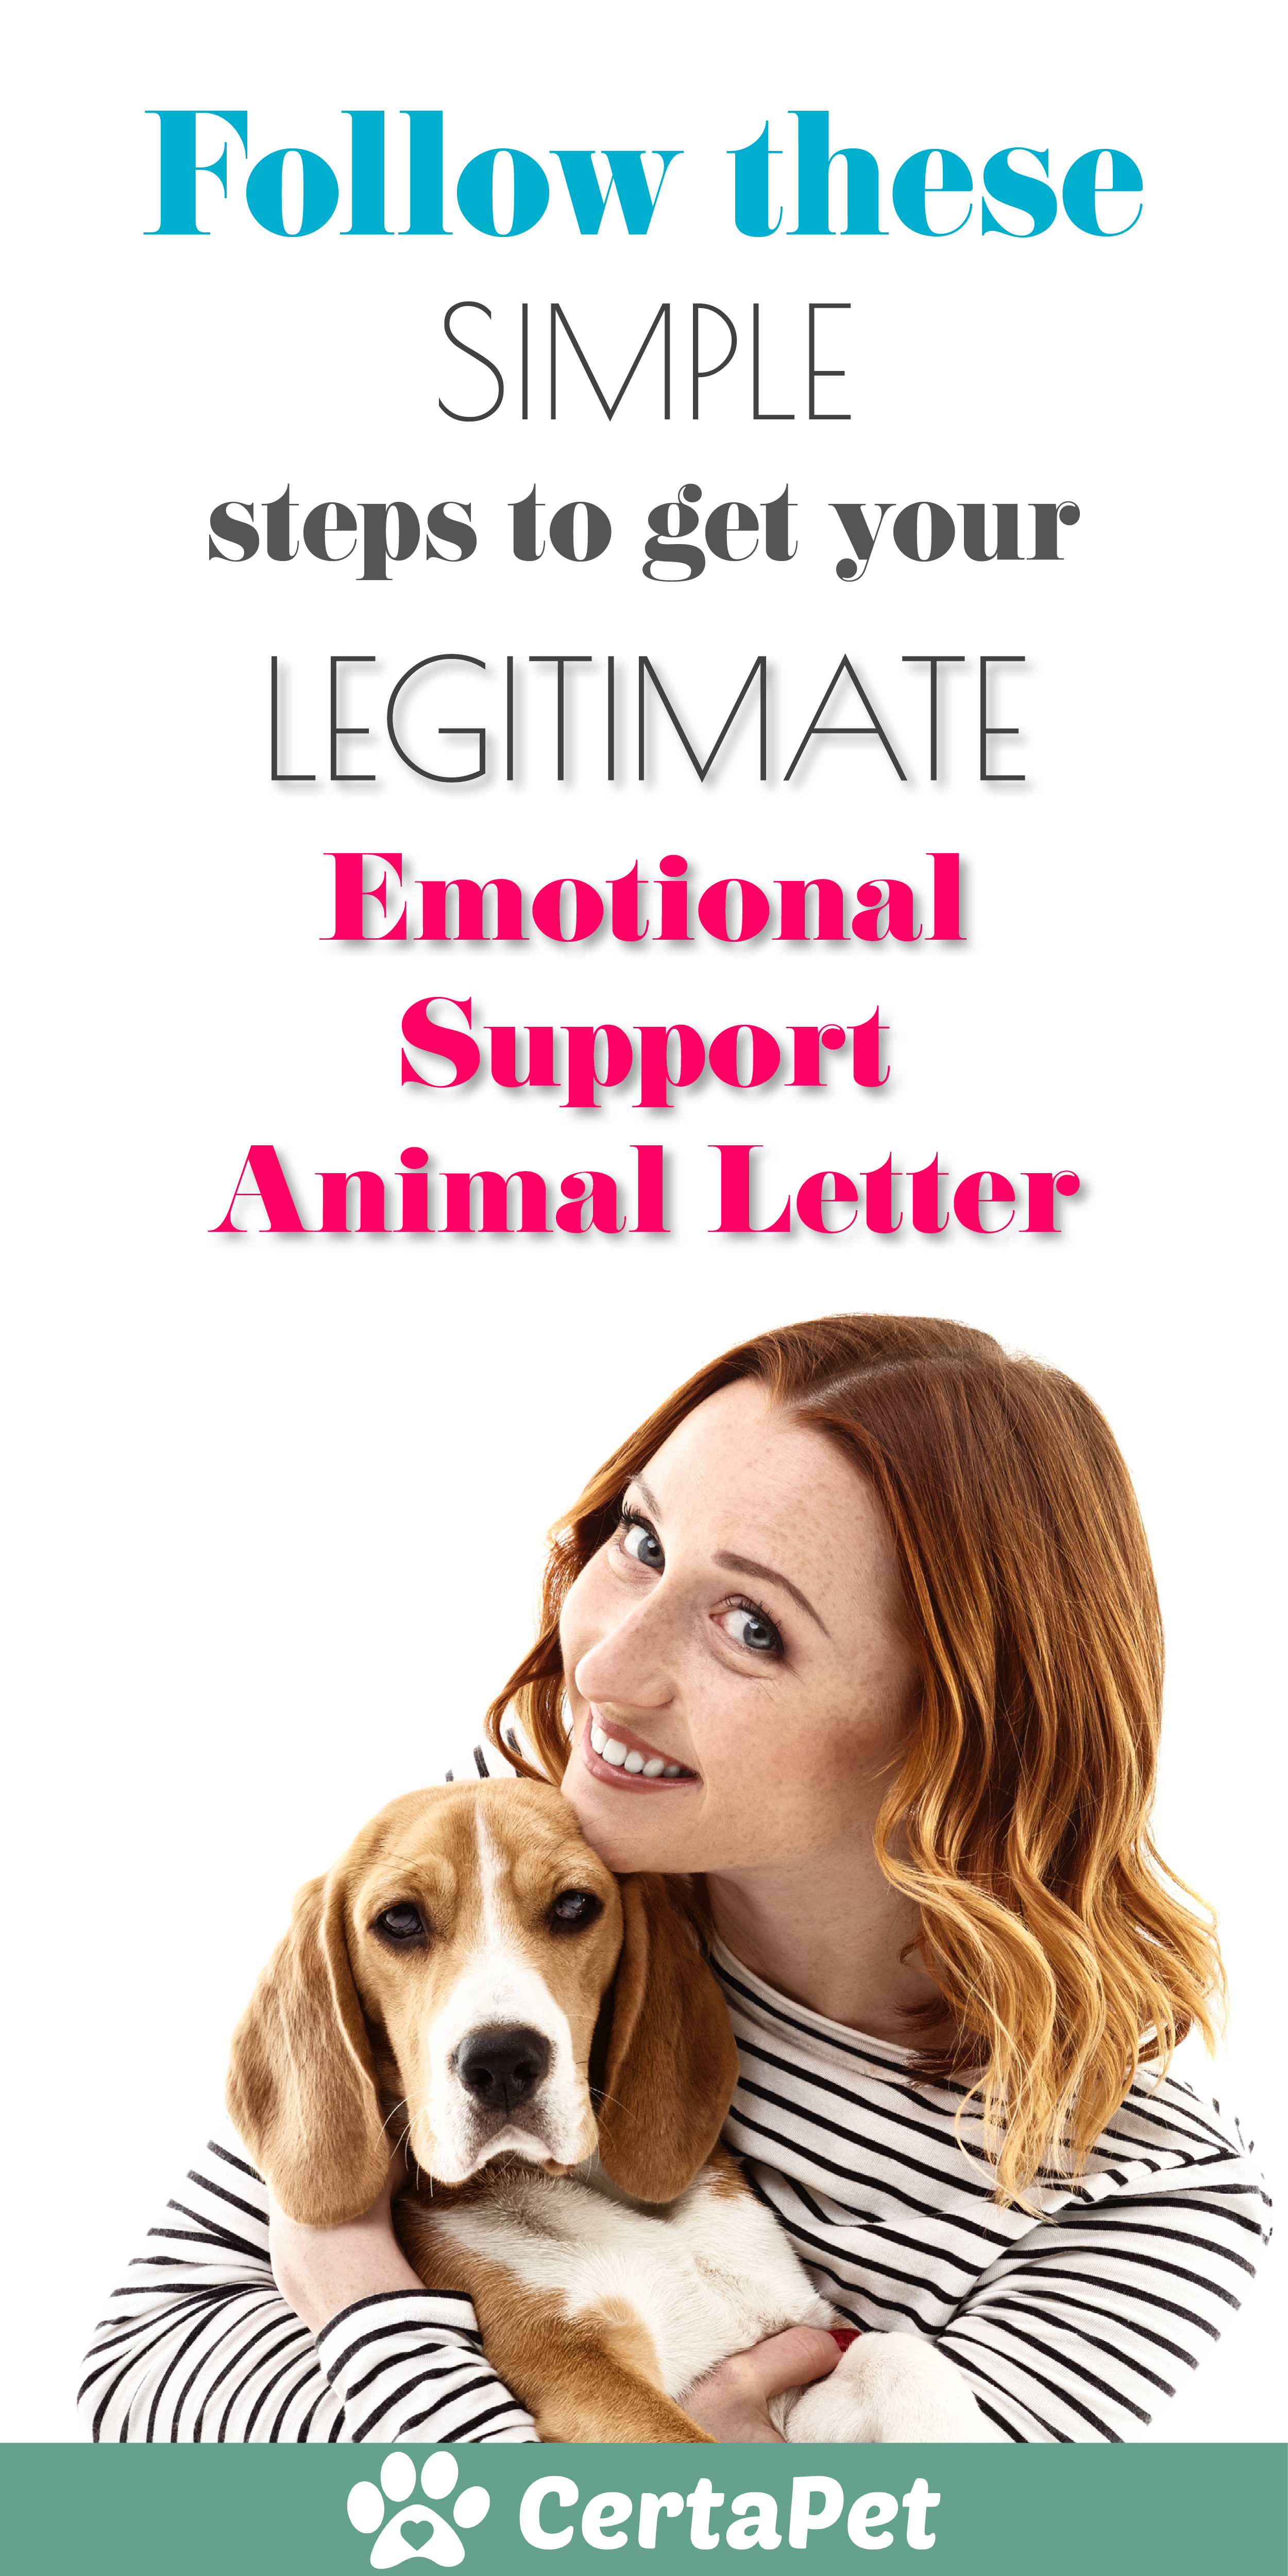 Get Your Emotional Support Animal Letter in Less than 48